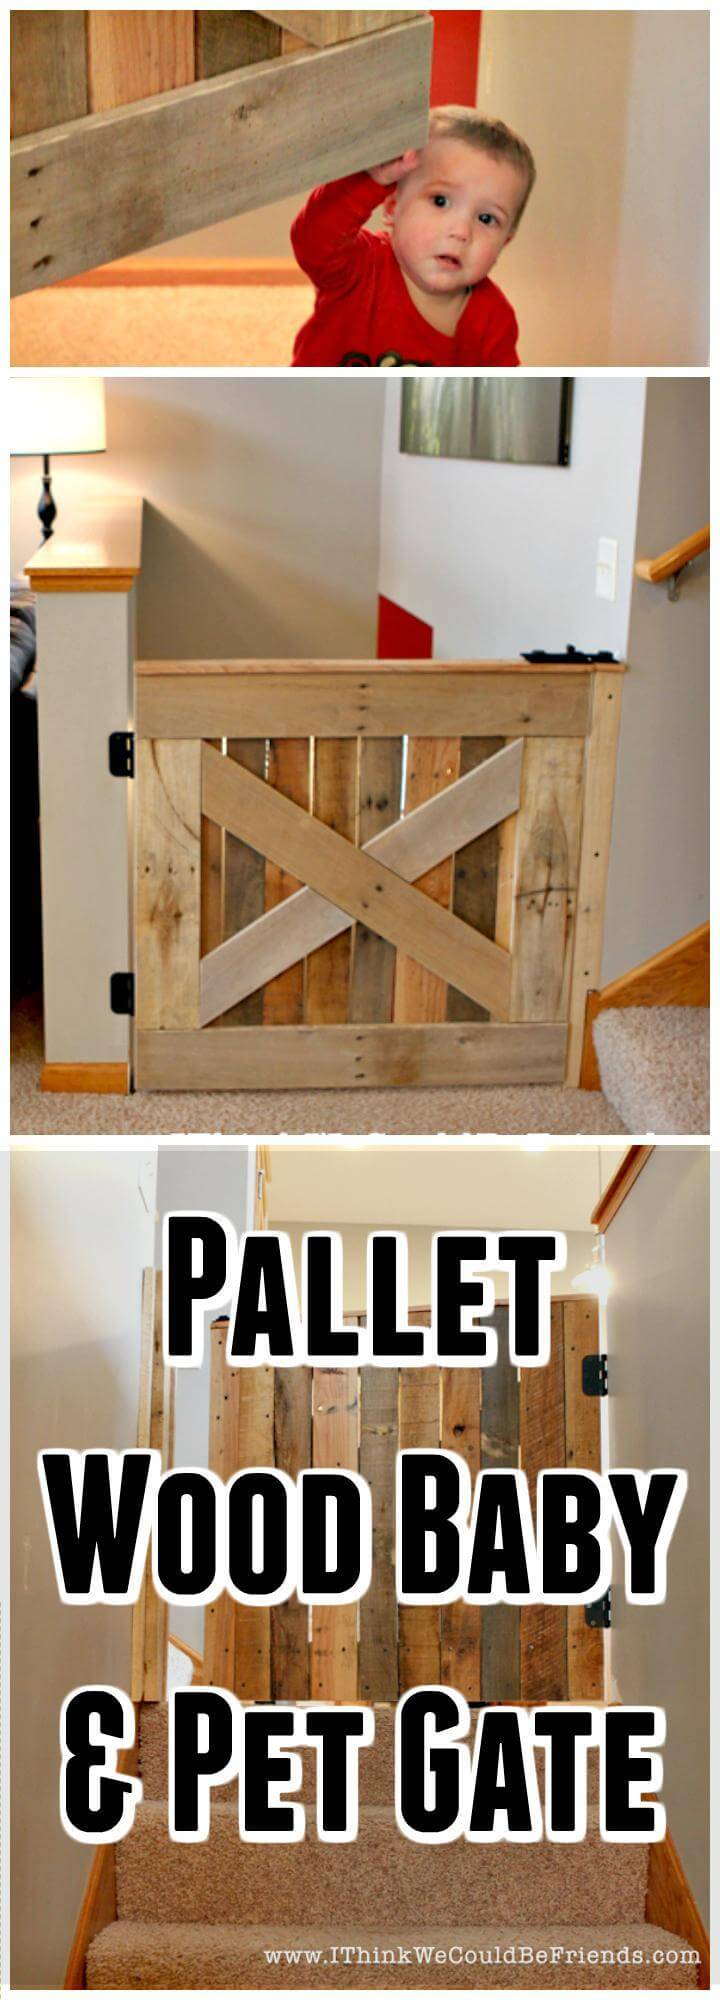 13 Diy Dog Gate Ideas: 30 Best DIY Baby Gate Tutorials On Cheap Budget